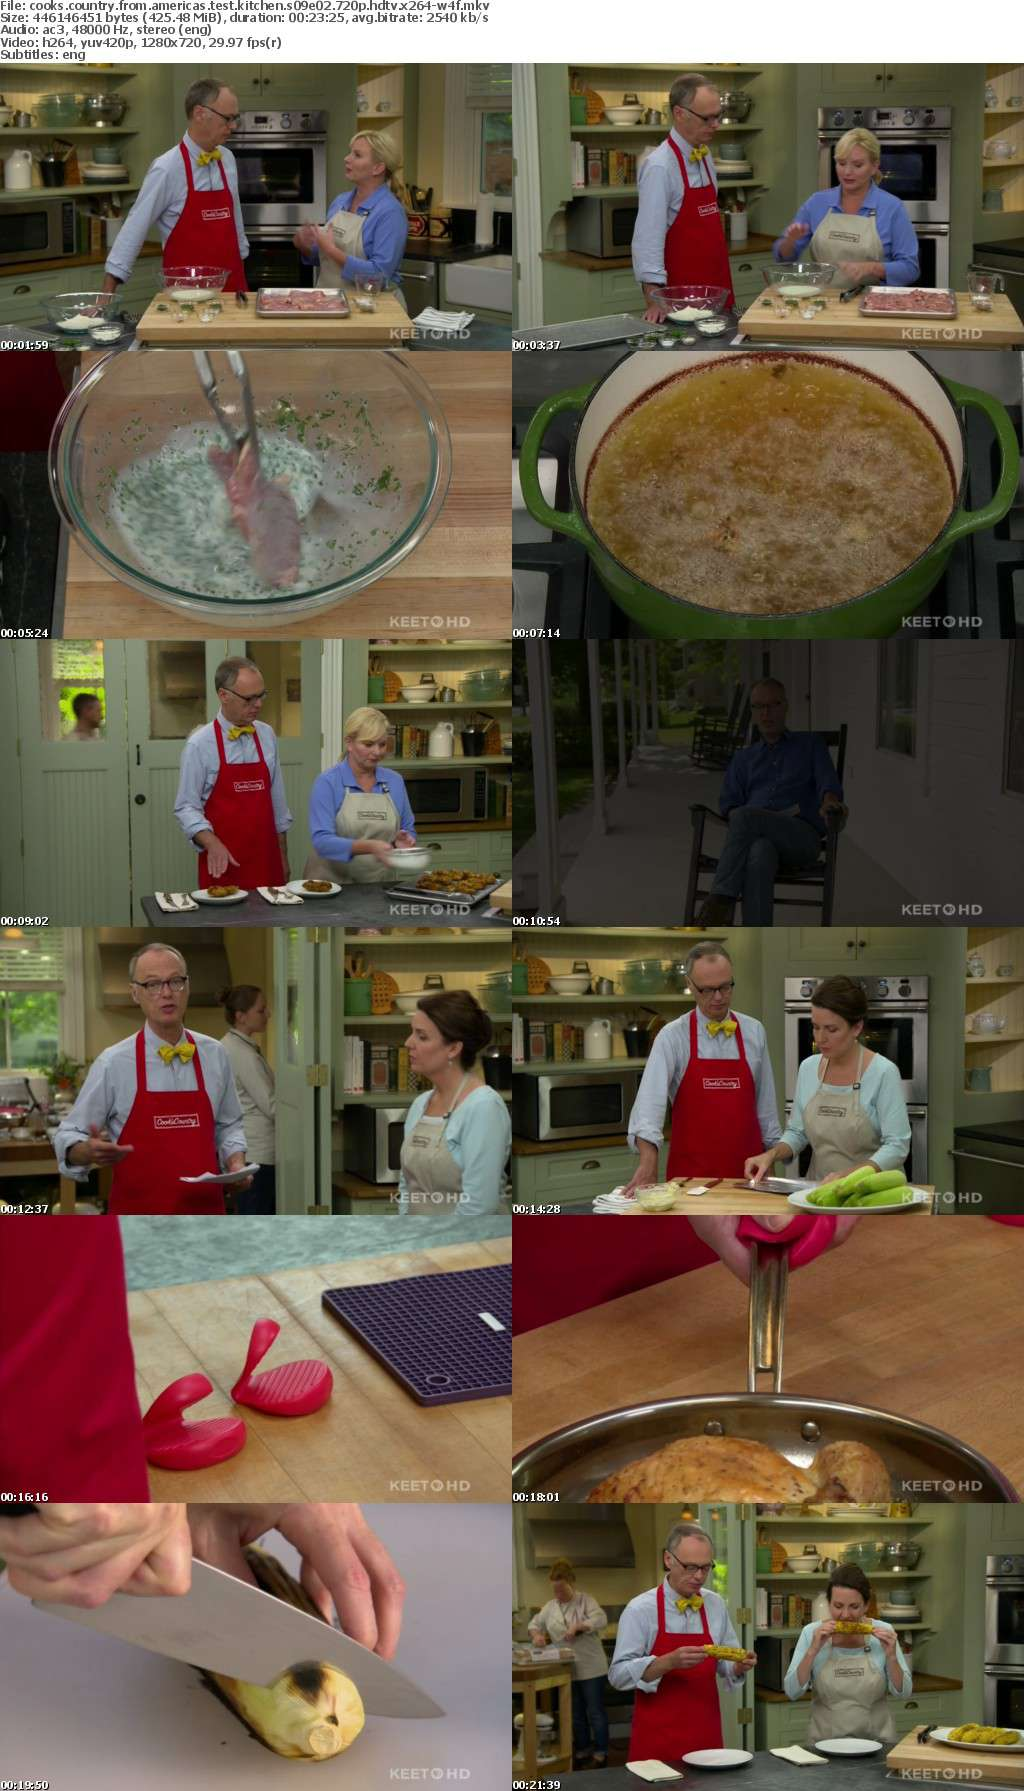 Cooks Country from Americas Test Kitchen S09E02 720p HDTV x264-W4F